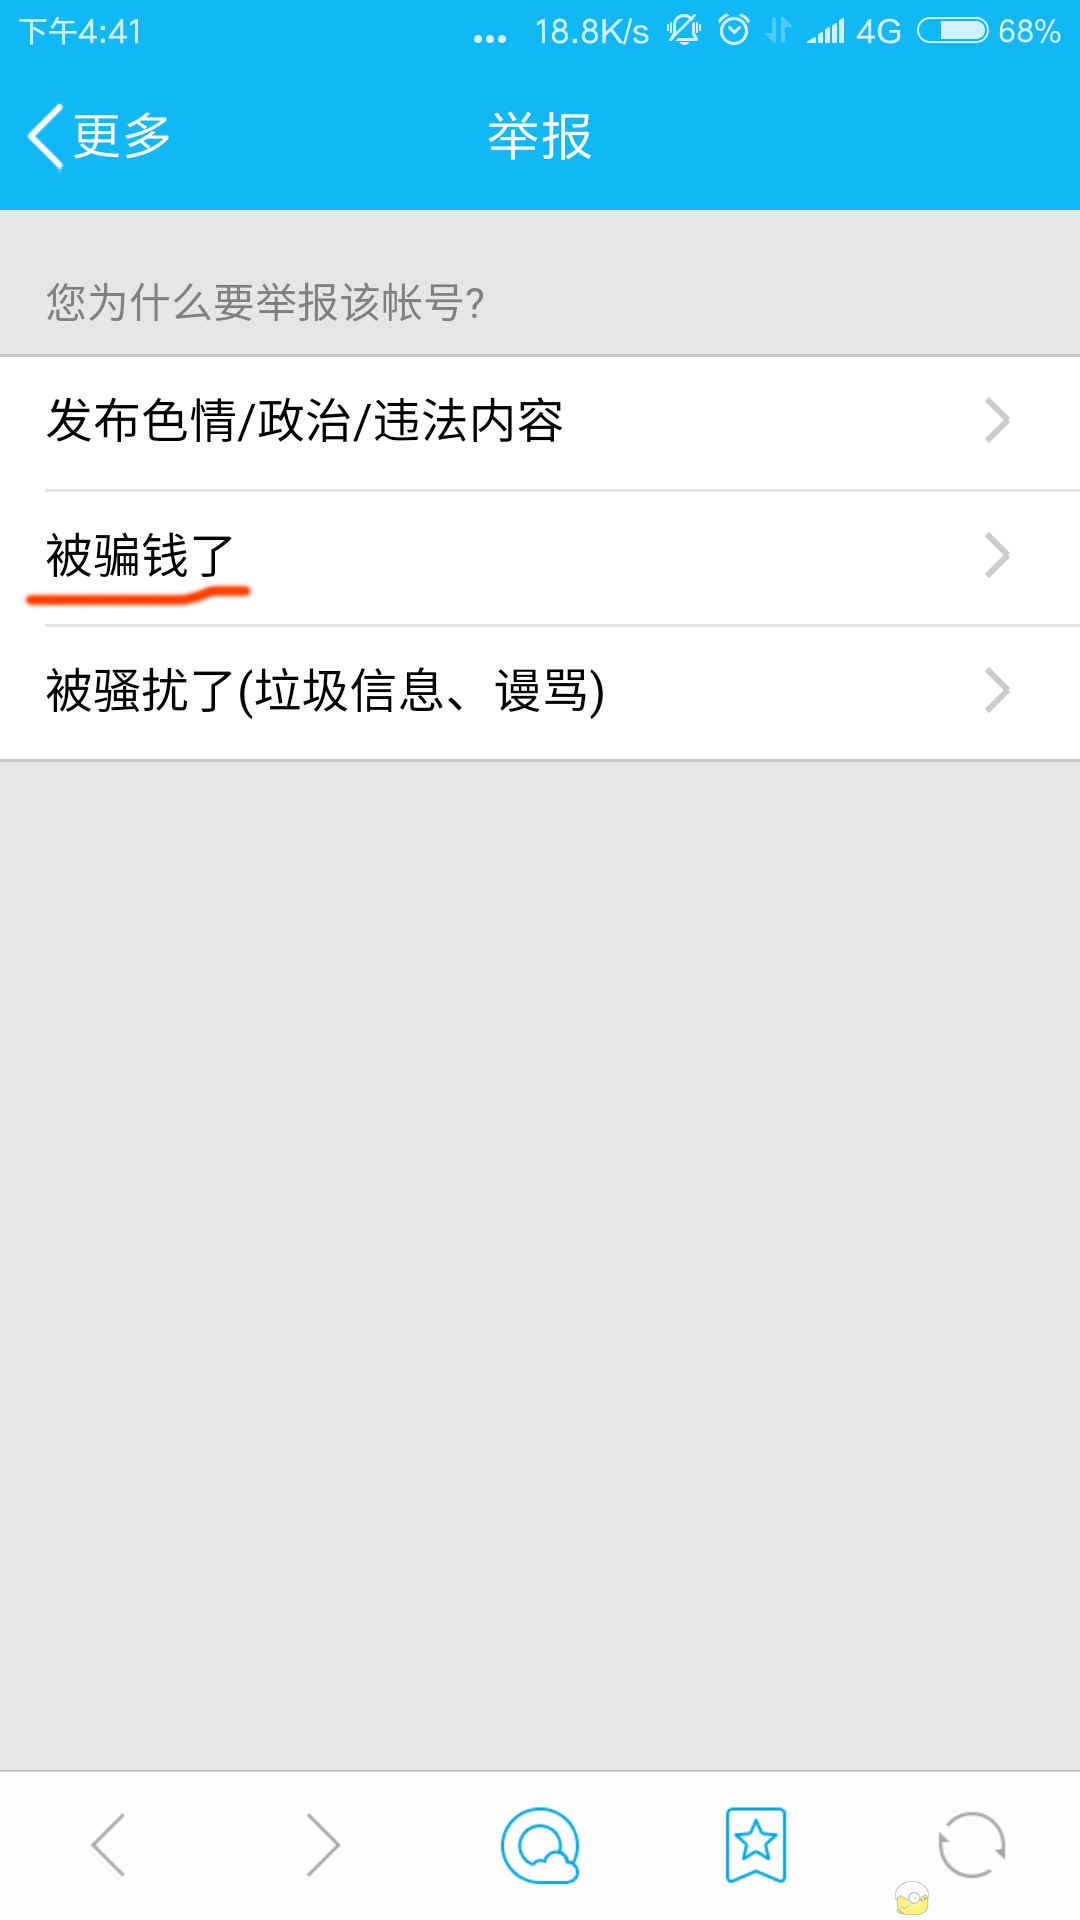 Screenshot_2016-07-25-16-41-24-977_com.tencent.mo.png